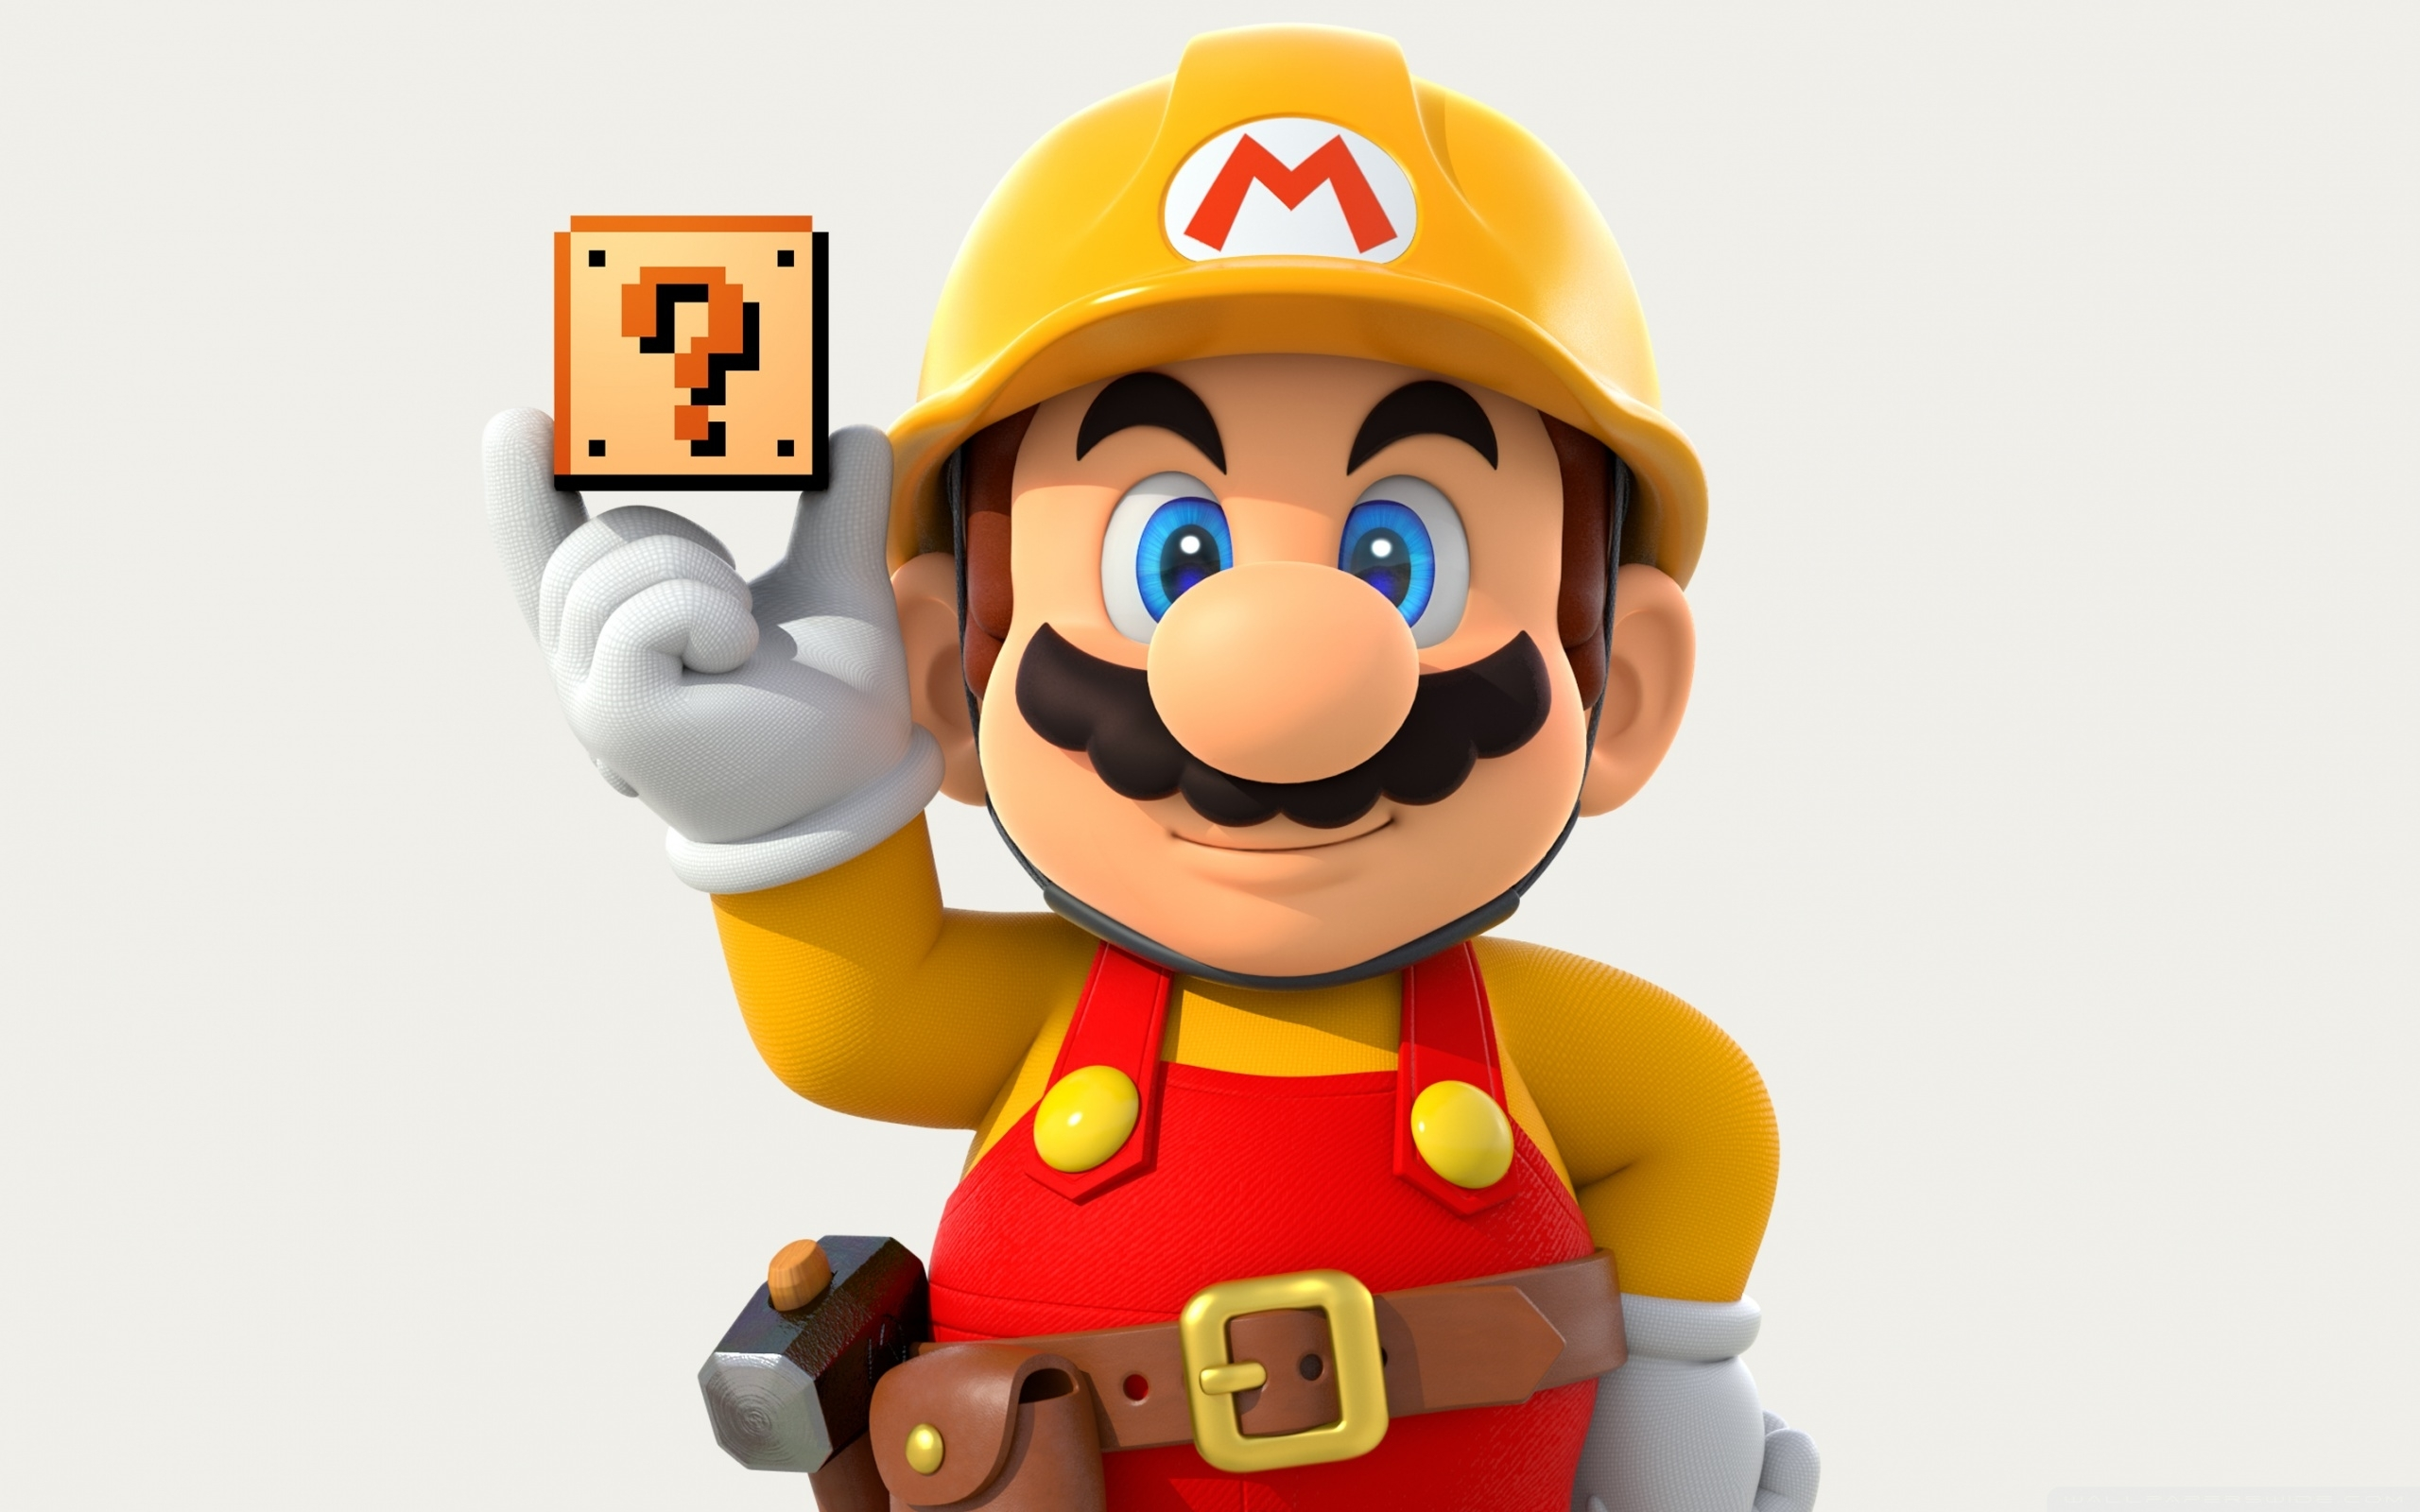 wallpaperswide ❤ mario hd desktop wallpapers for 4k ultra hd